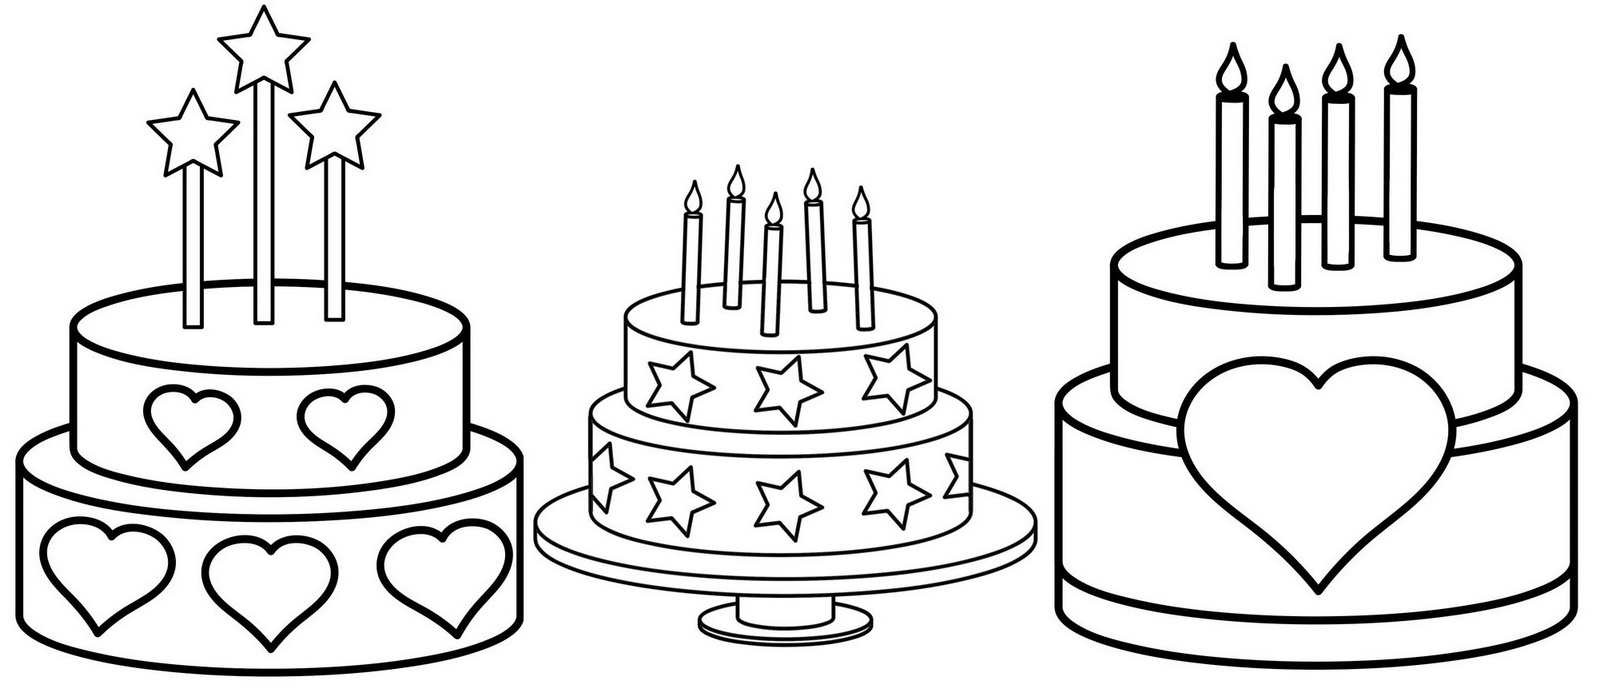 3 designs of birthday cake ideas coloring sheet